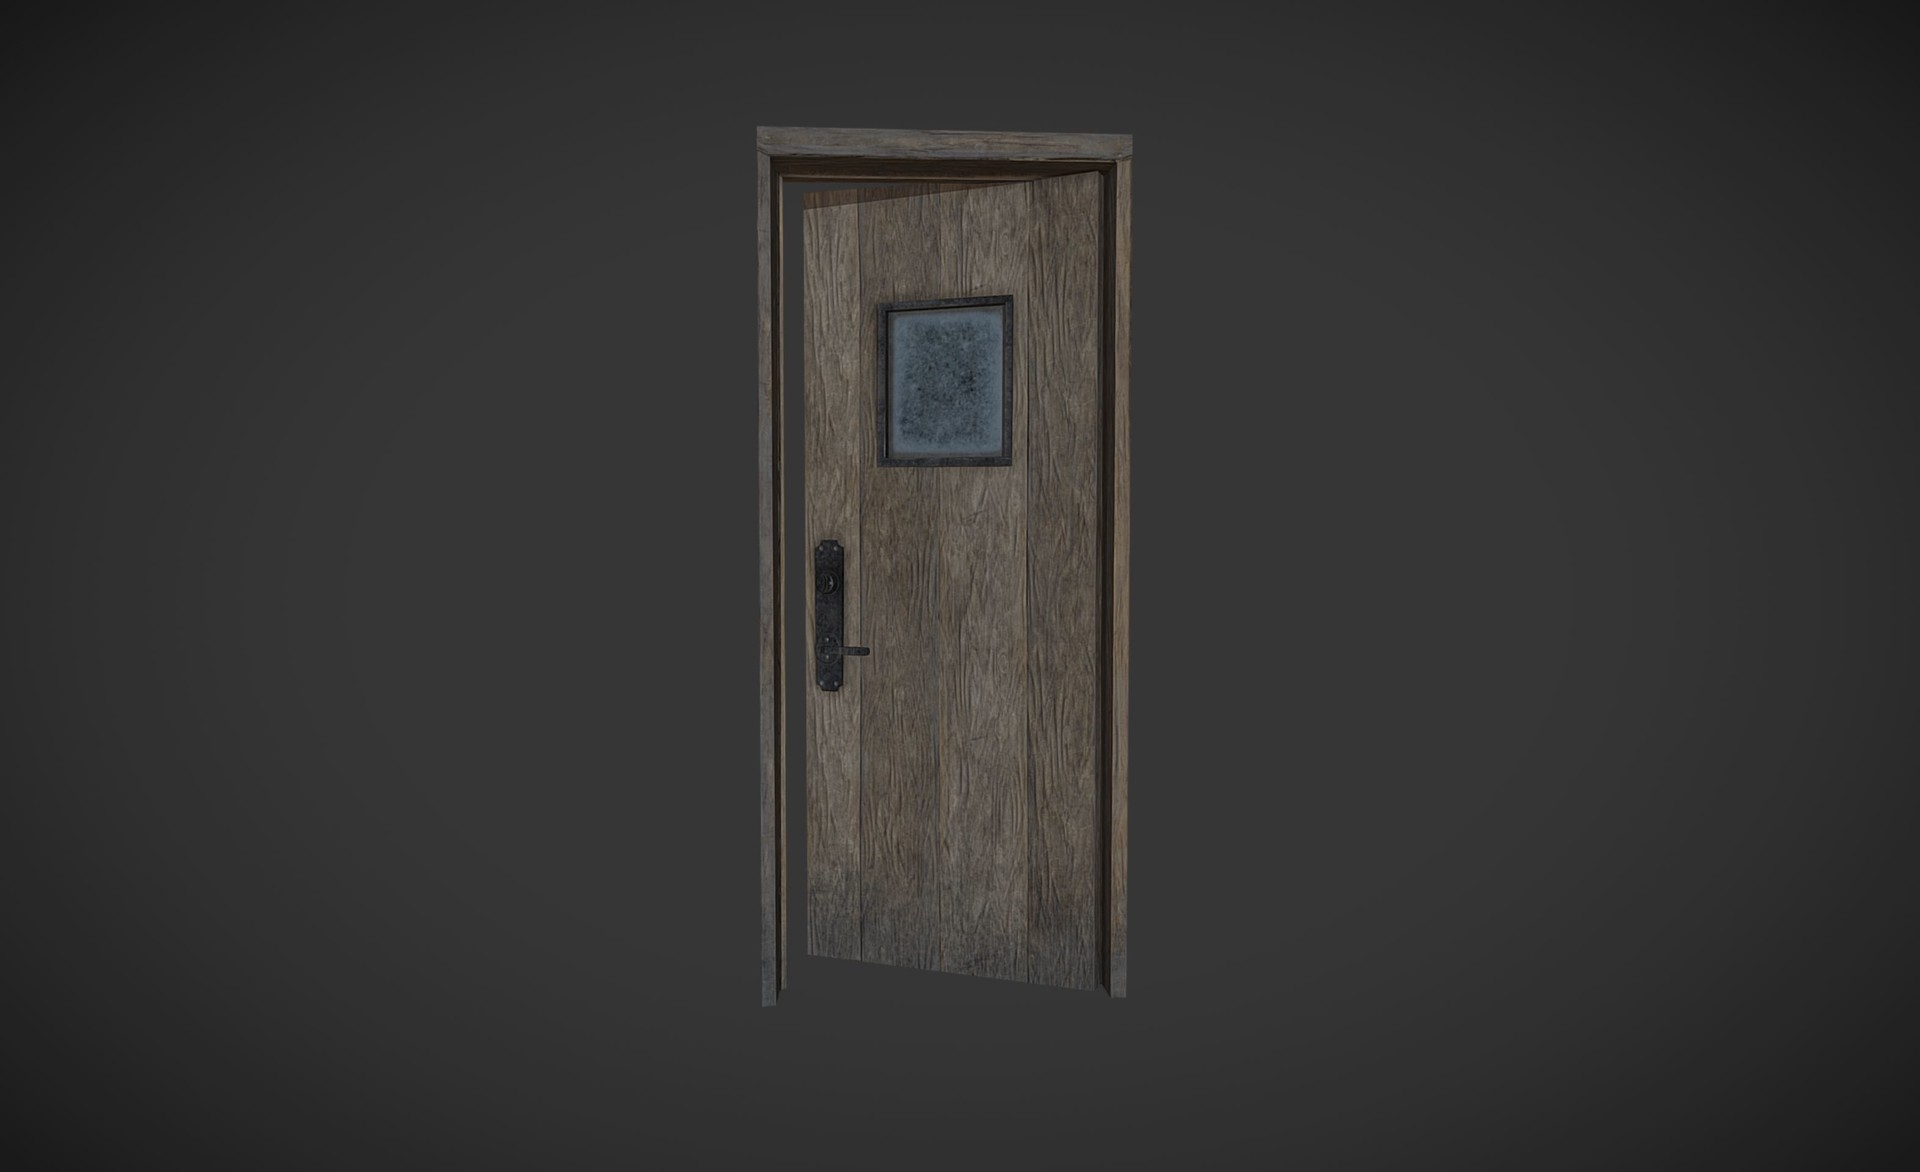 Rustic door for The Shadows Lengthen game: rear detail